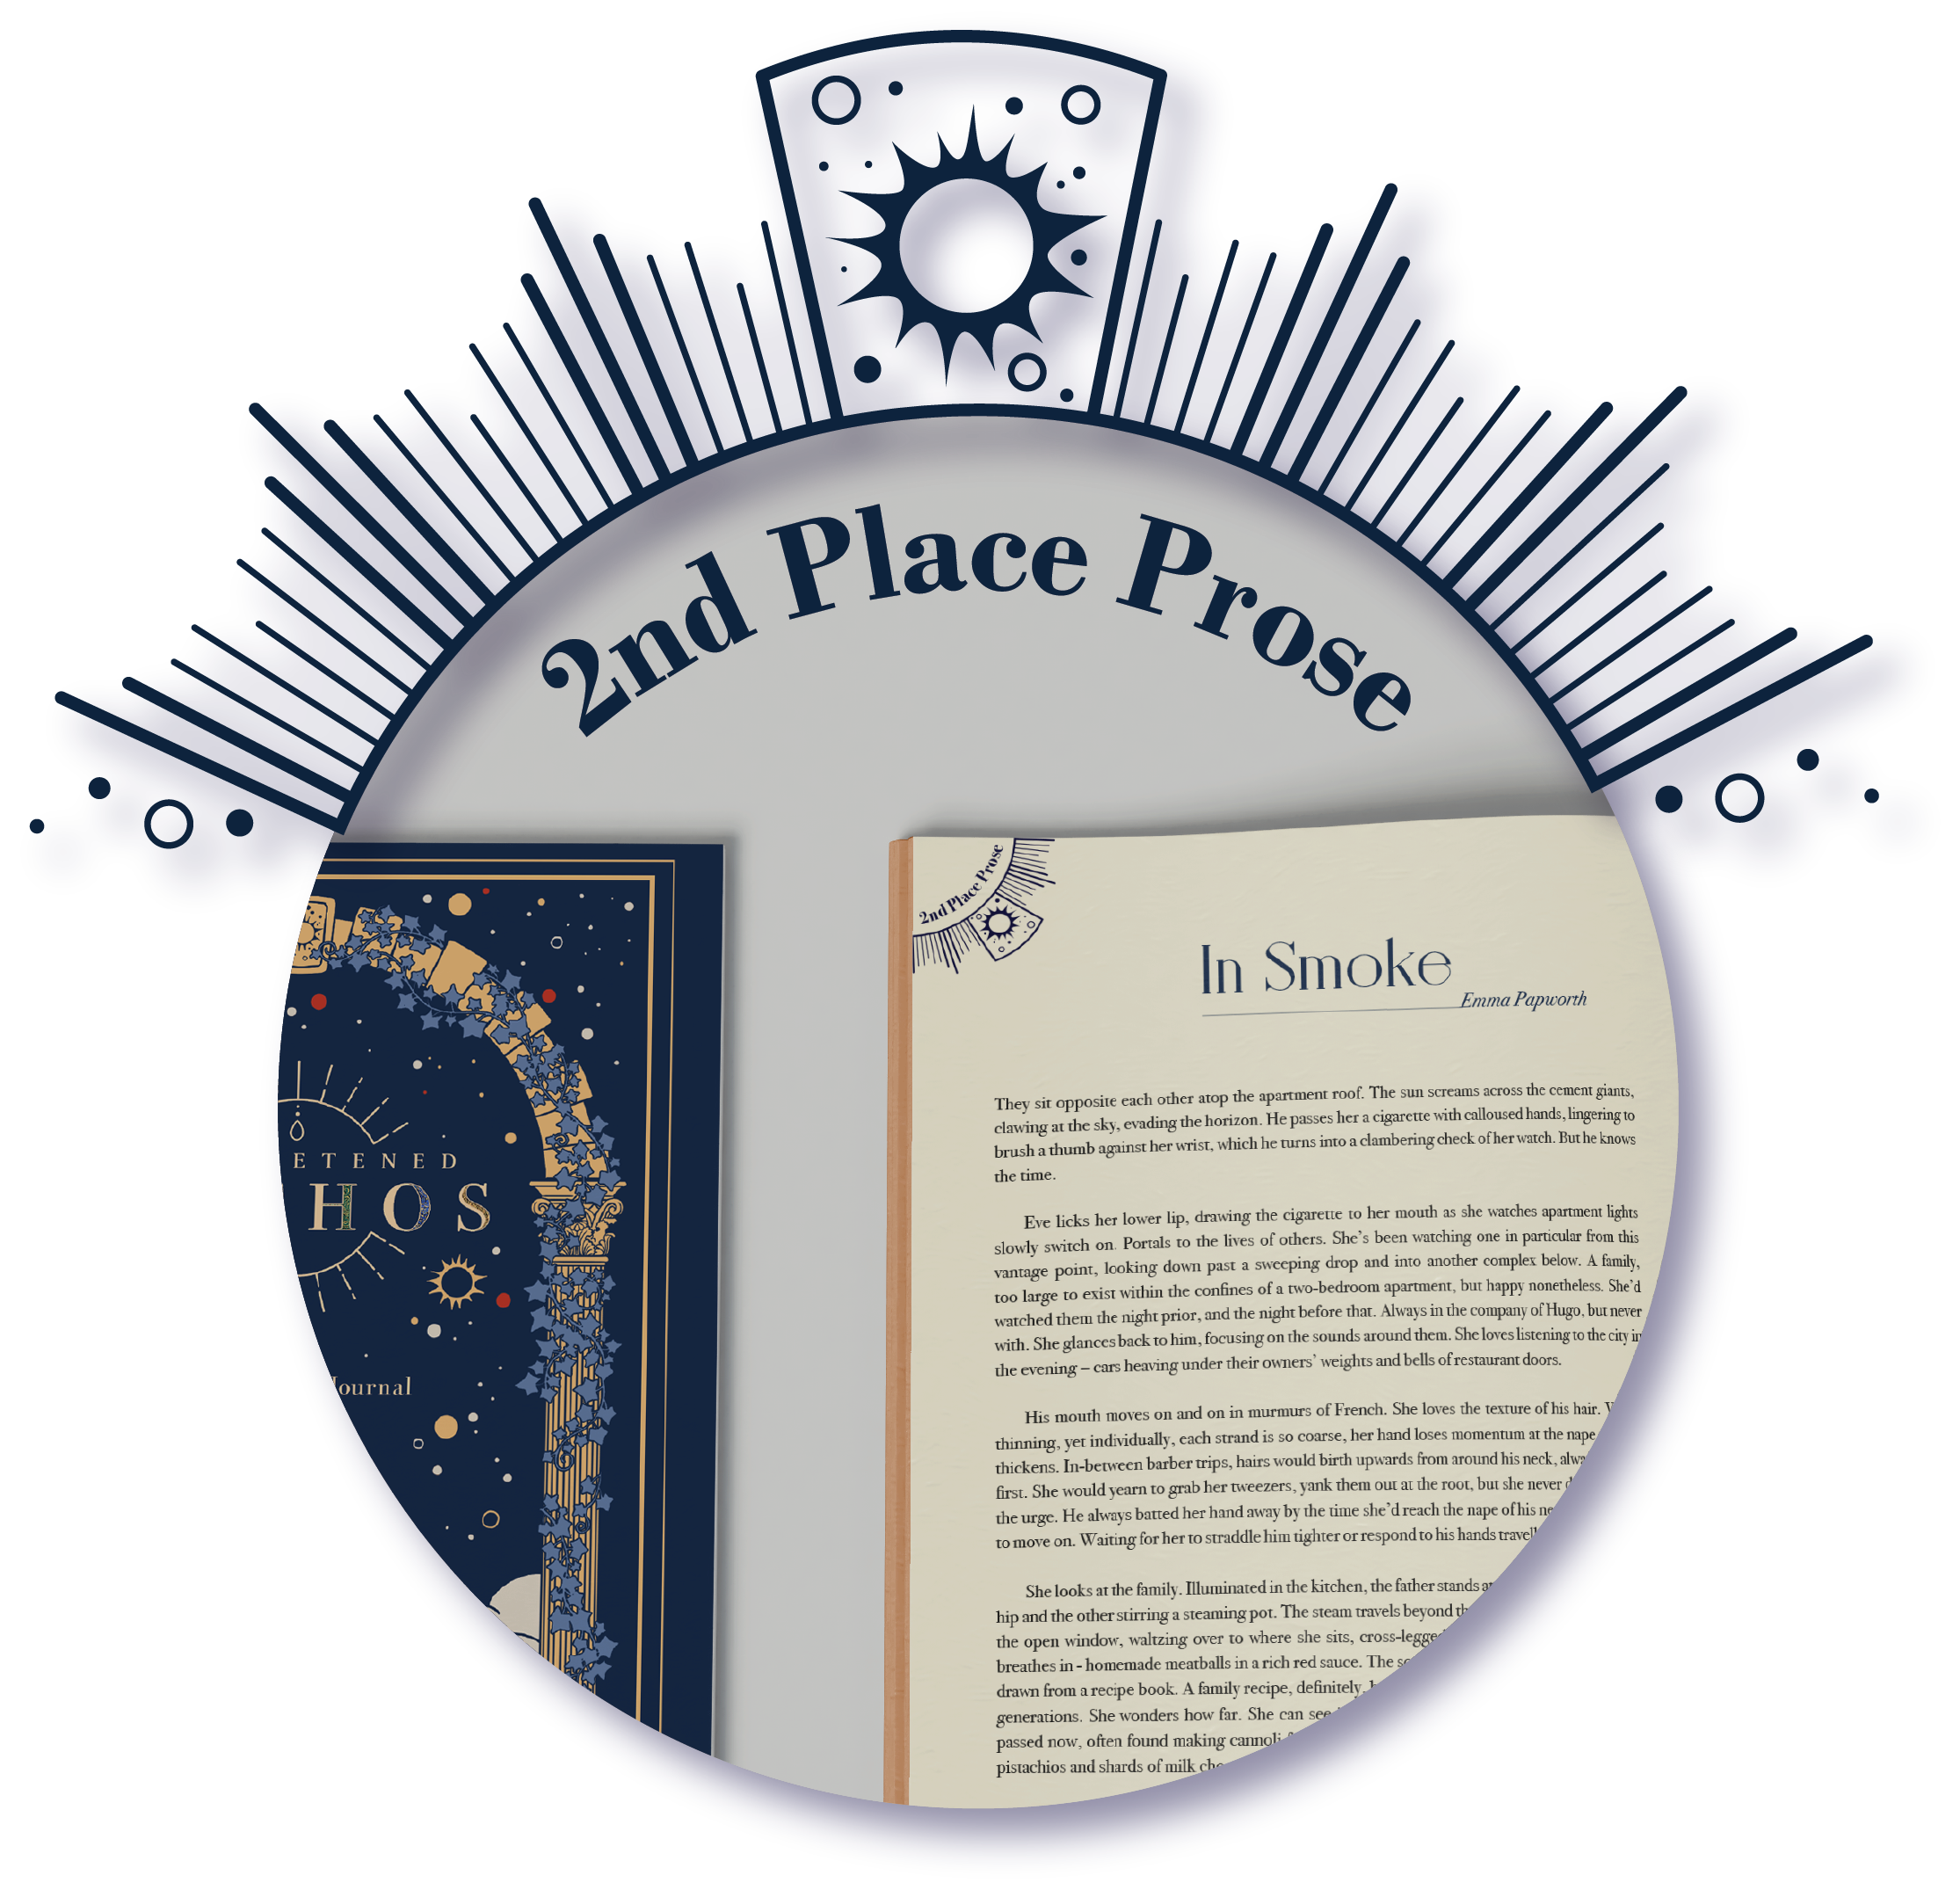 The prize-winner logo for 2nd place prose, showing the journal page for 'In Smoke' by Emma Papworth.